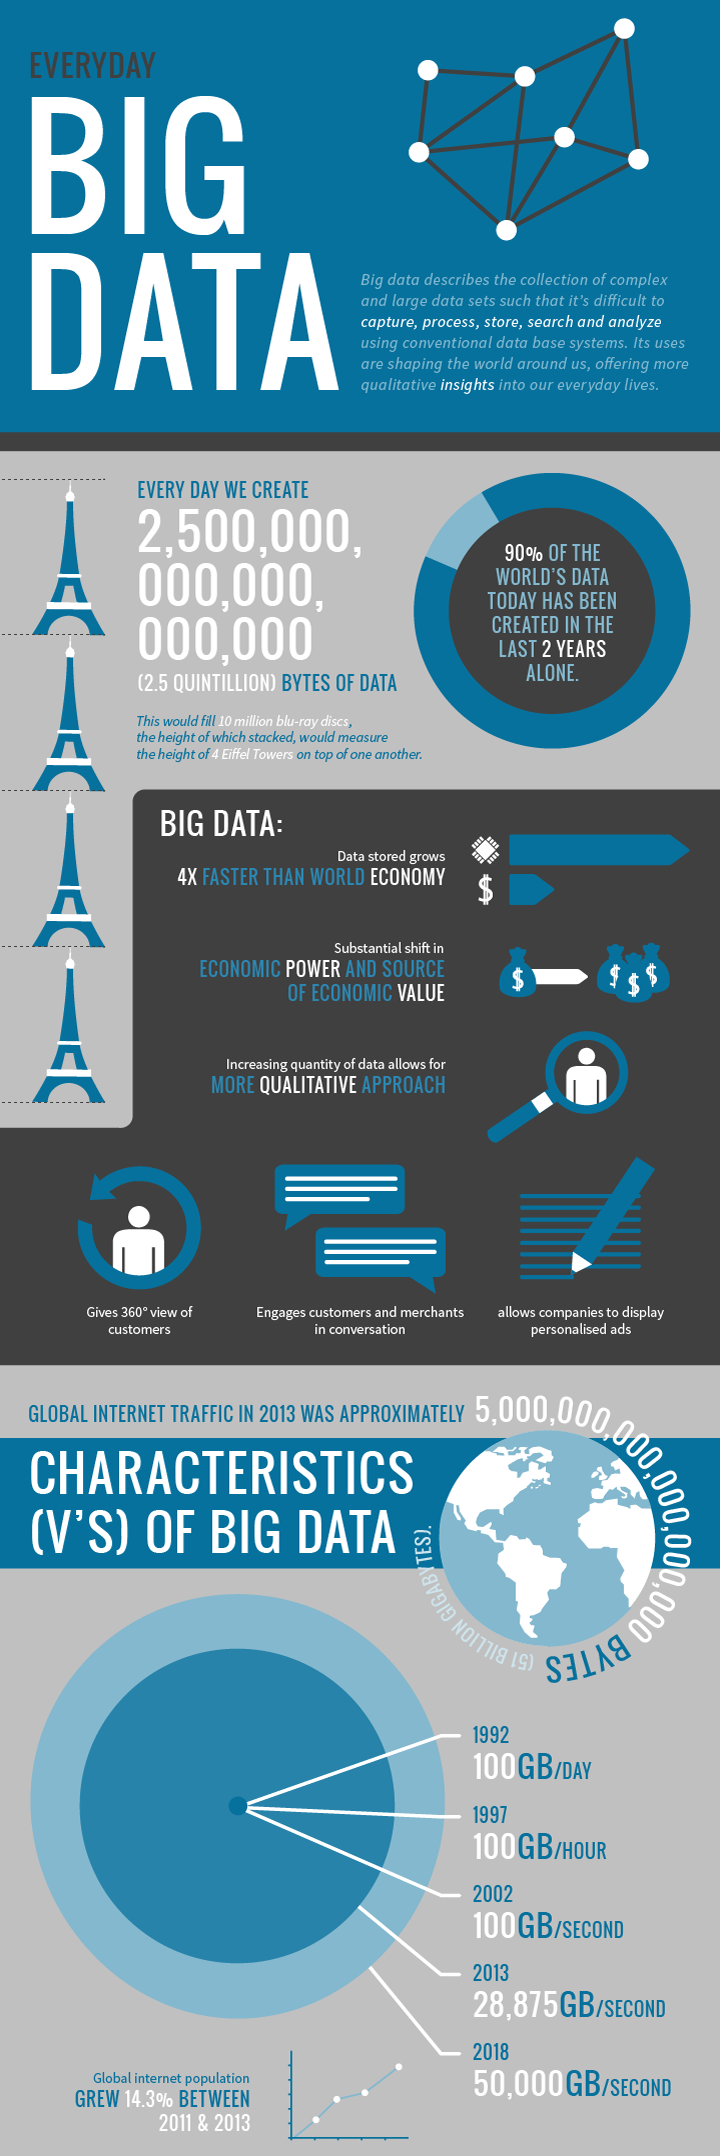 Local media need to think bigger about the Big Data